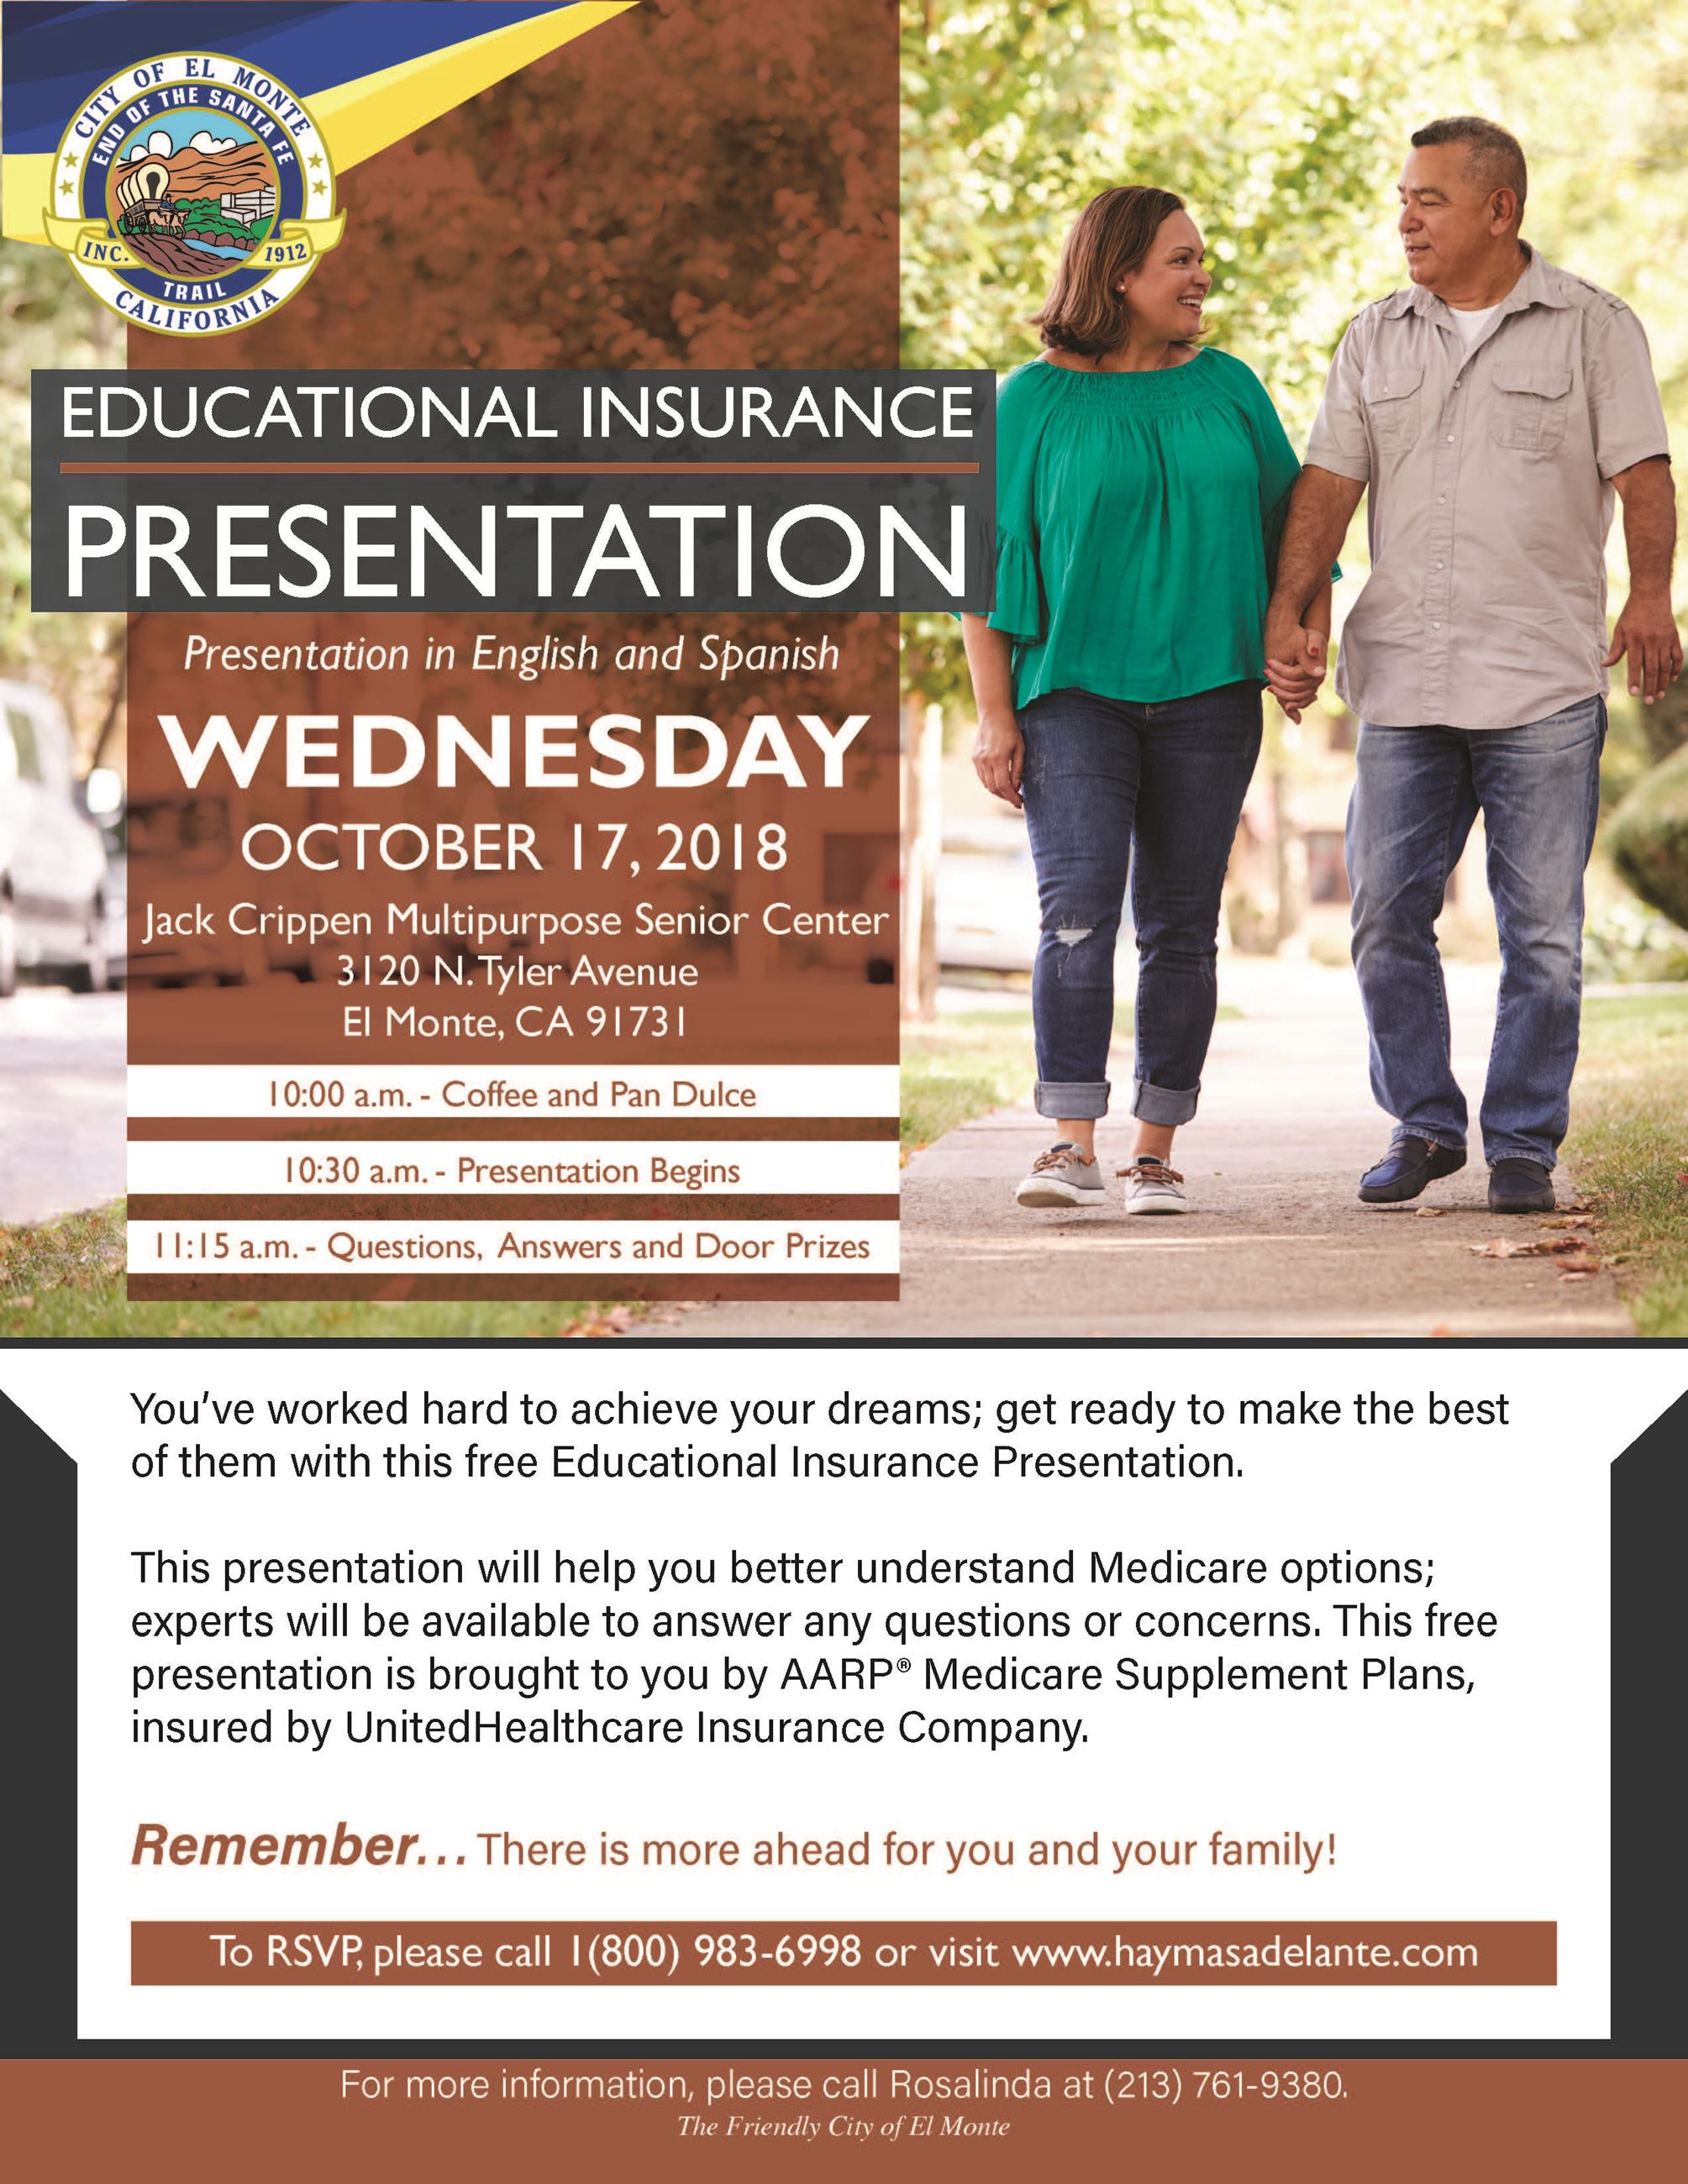 2018_Educational_Insurance_Presentation_JackCrippen_Flyer_A